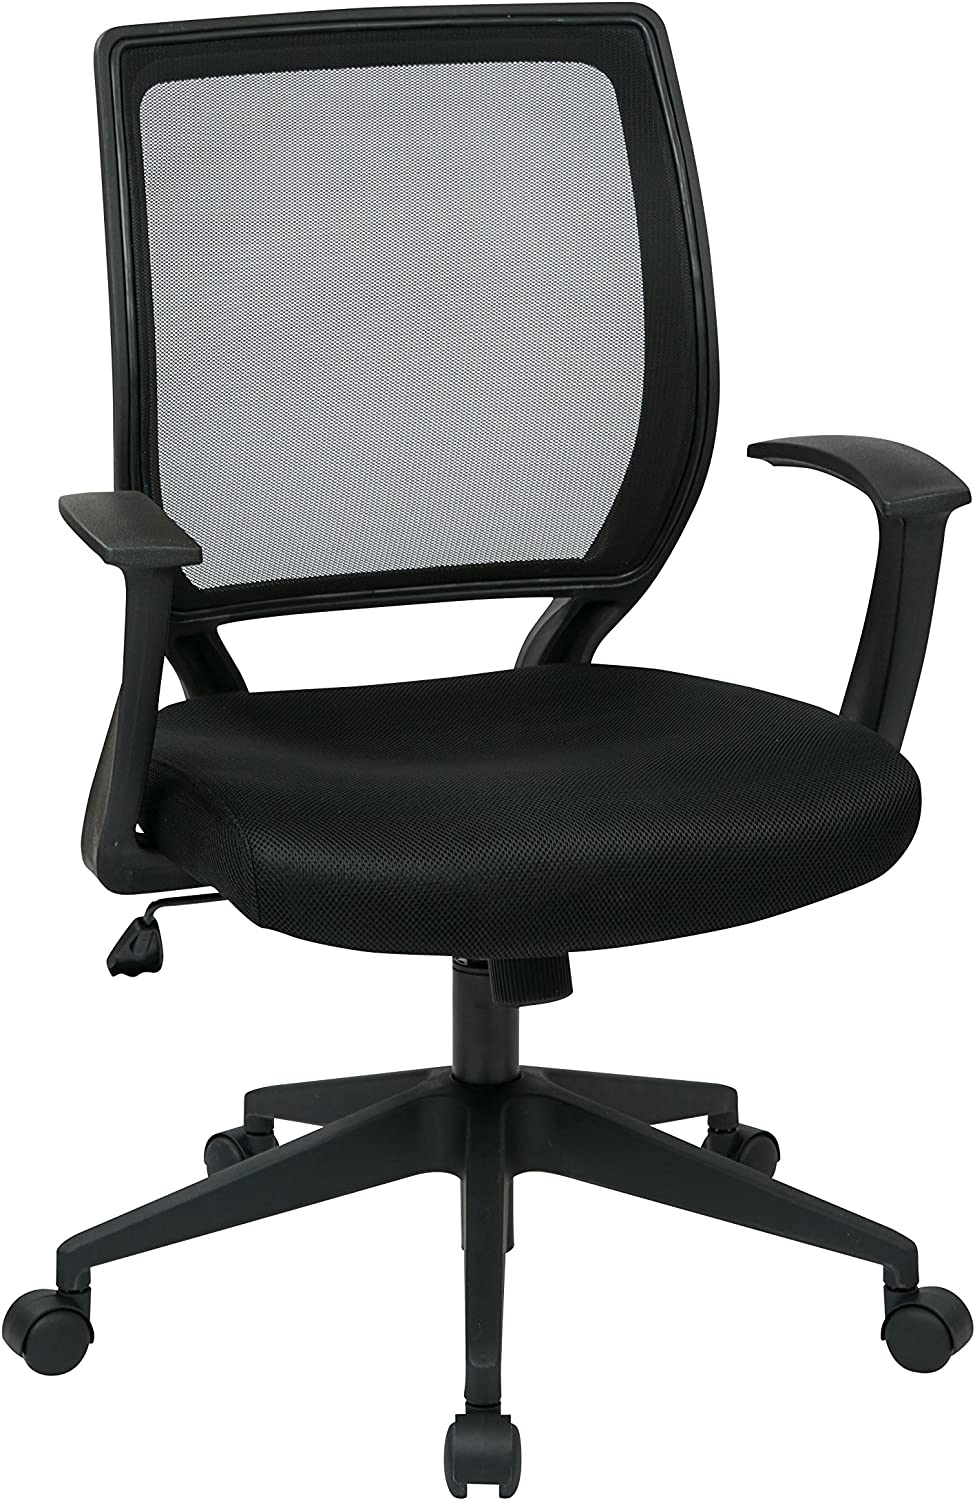 Work Smart Office Star Woven Mesh Back Task Chair with Fixed Arms and Padded Seat, Black